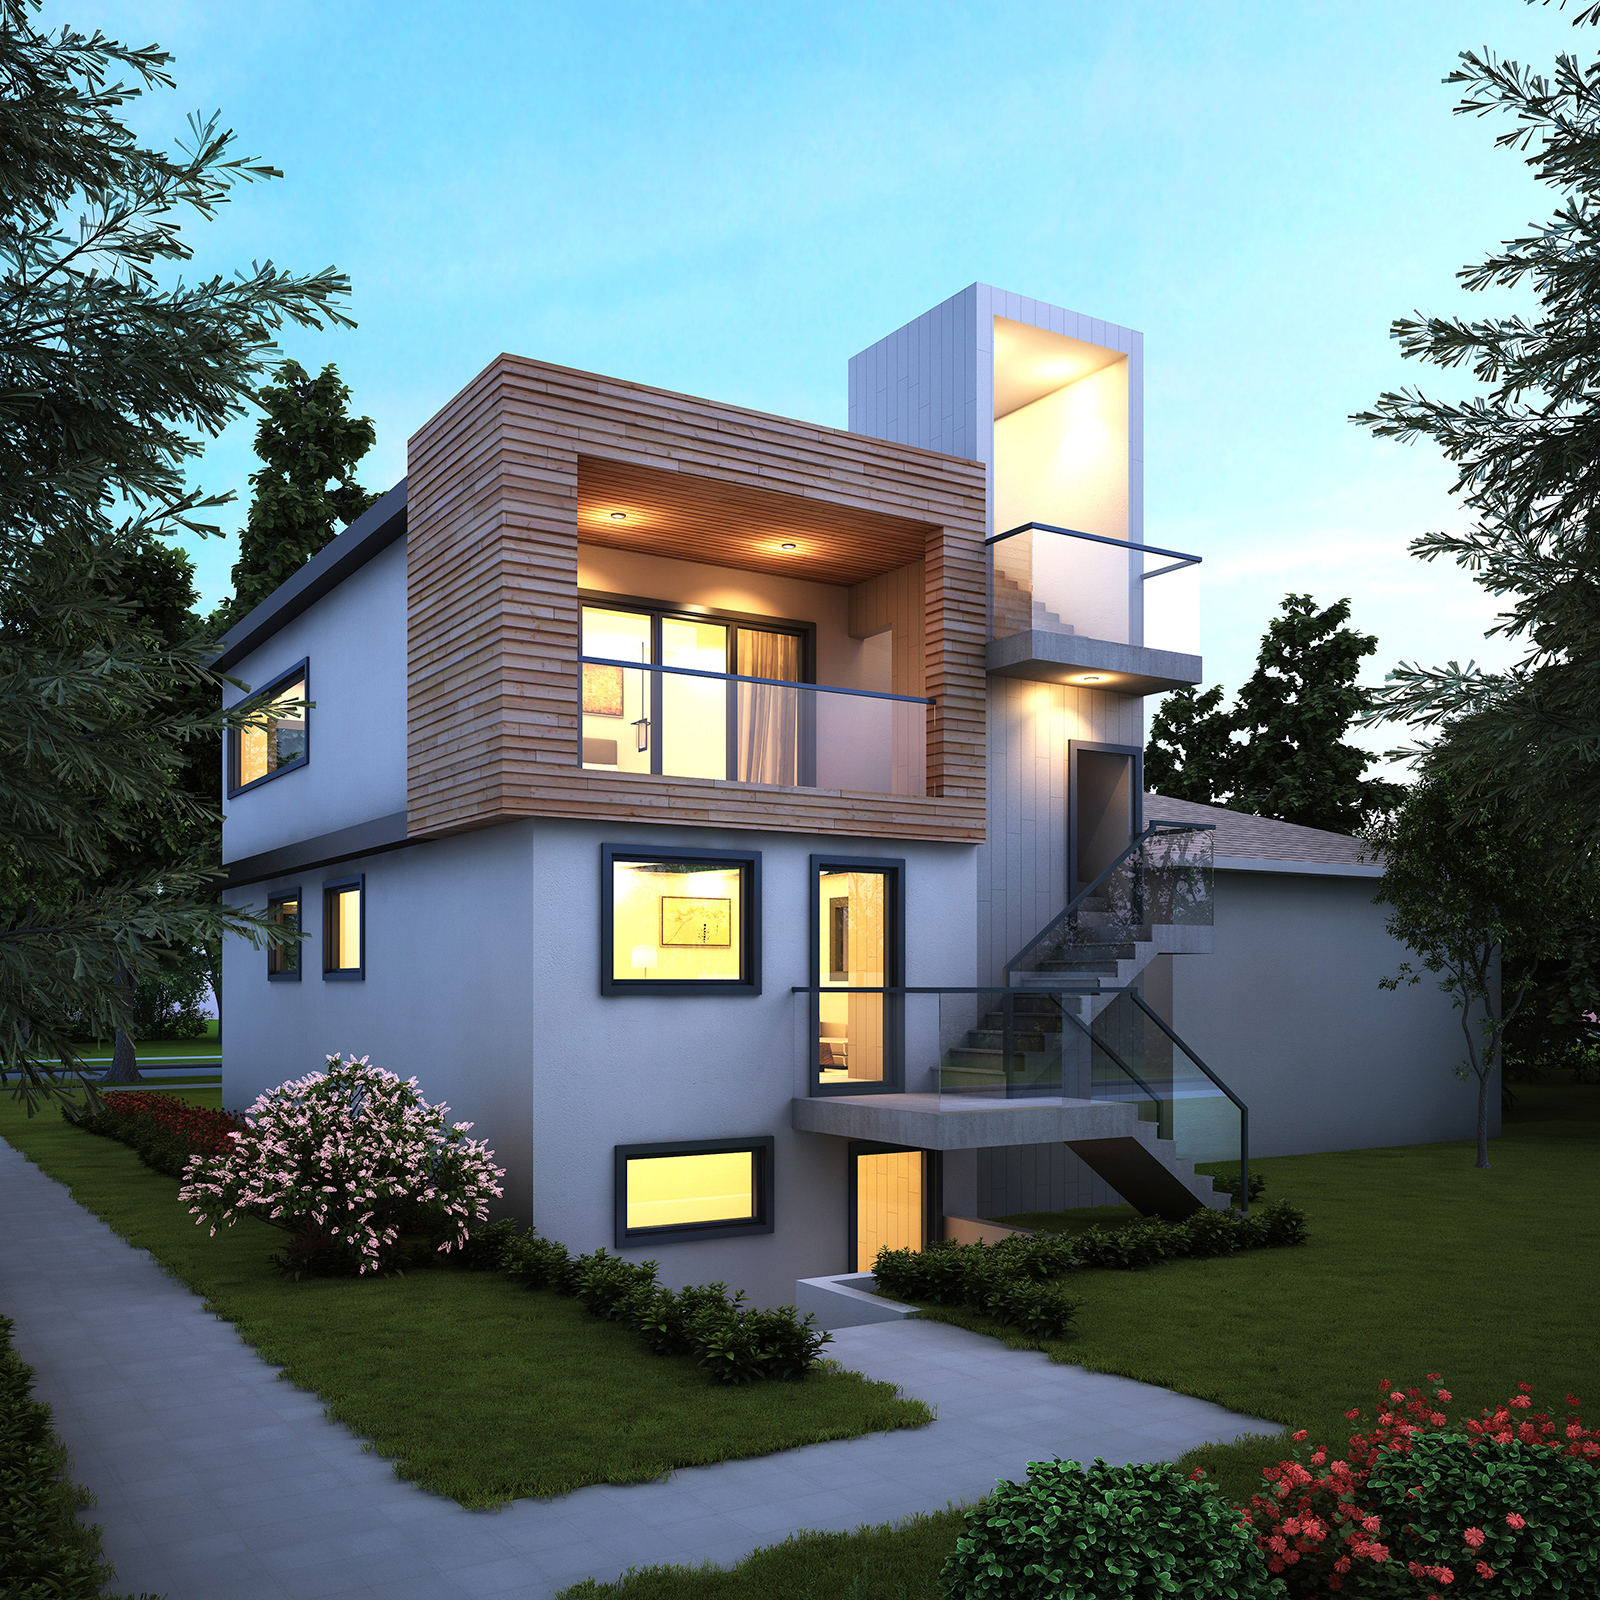 passive house design - green building design - marken dc